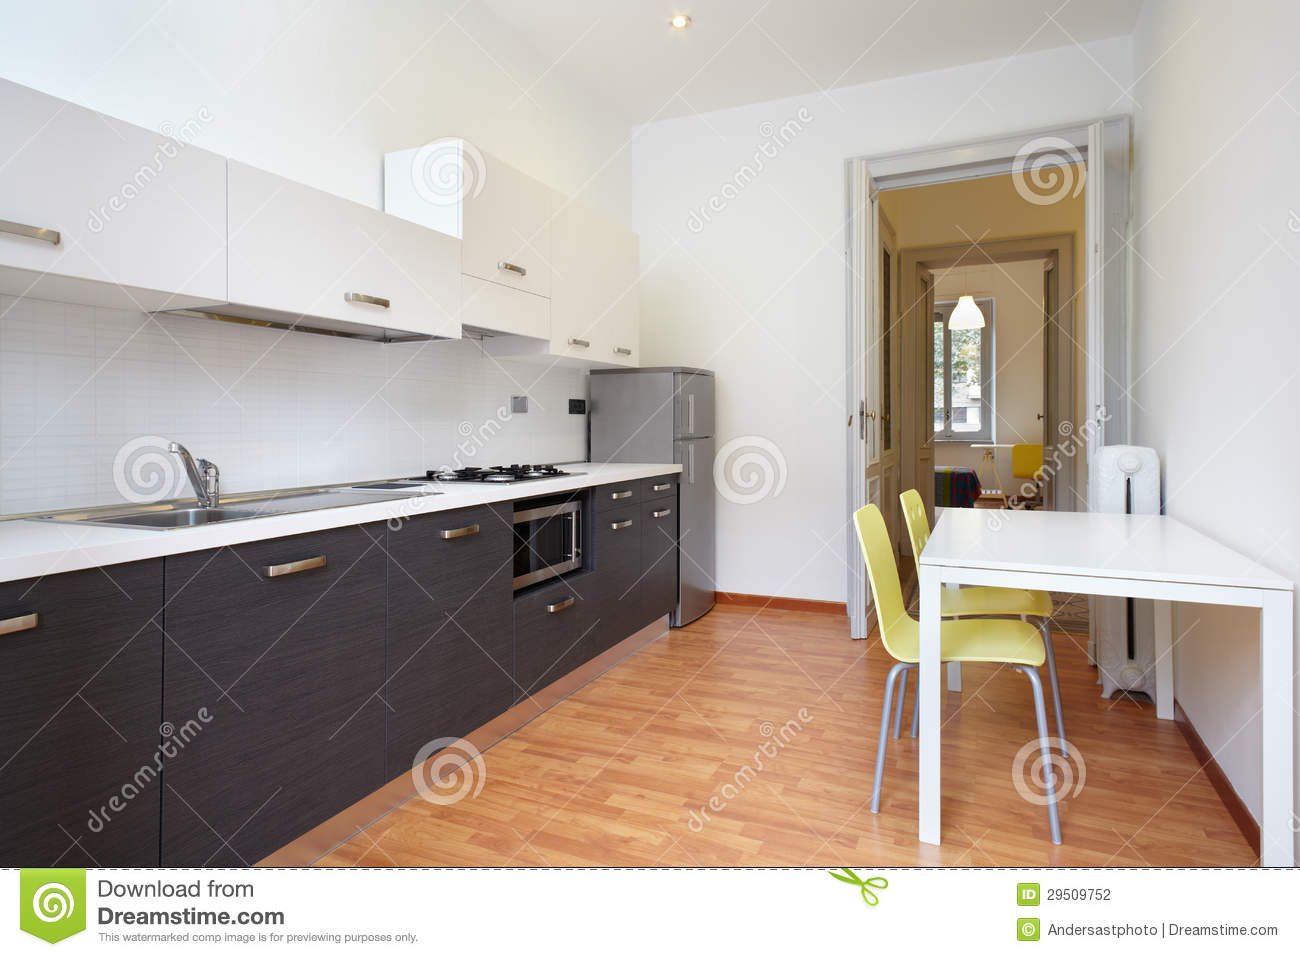 cuisine moderne en appartement neuf photo stock image